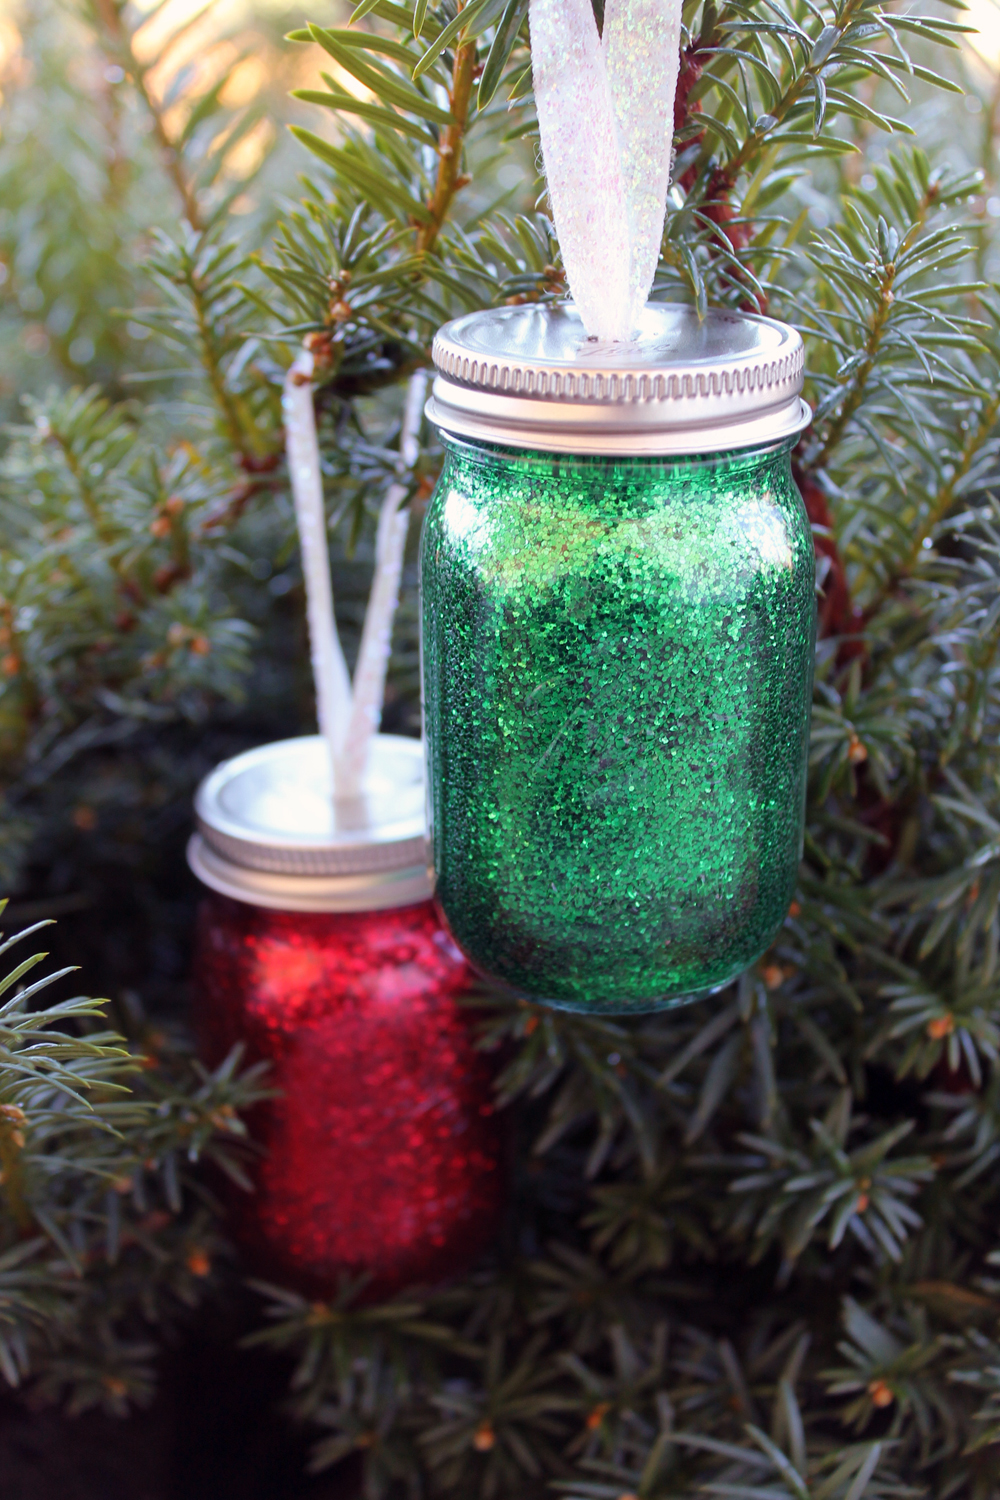 DIY glitter mini mason jar ornament - make your own for your Christmas tree!